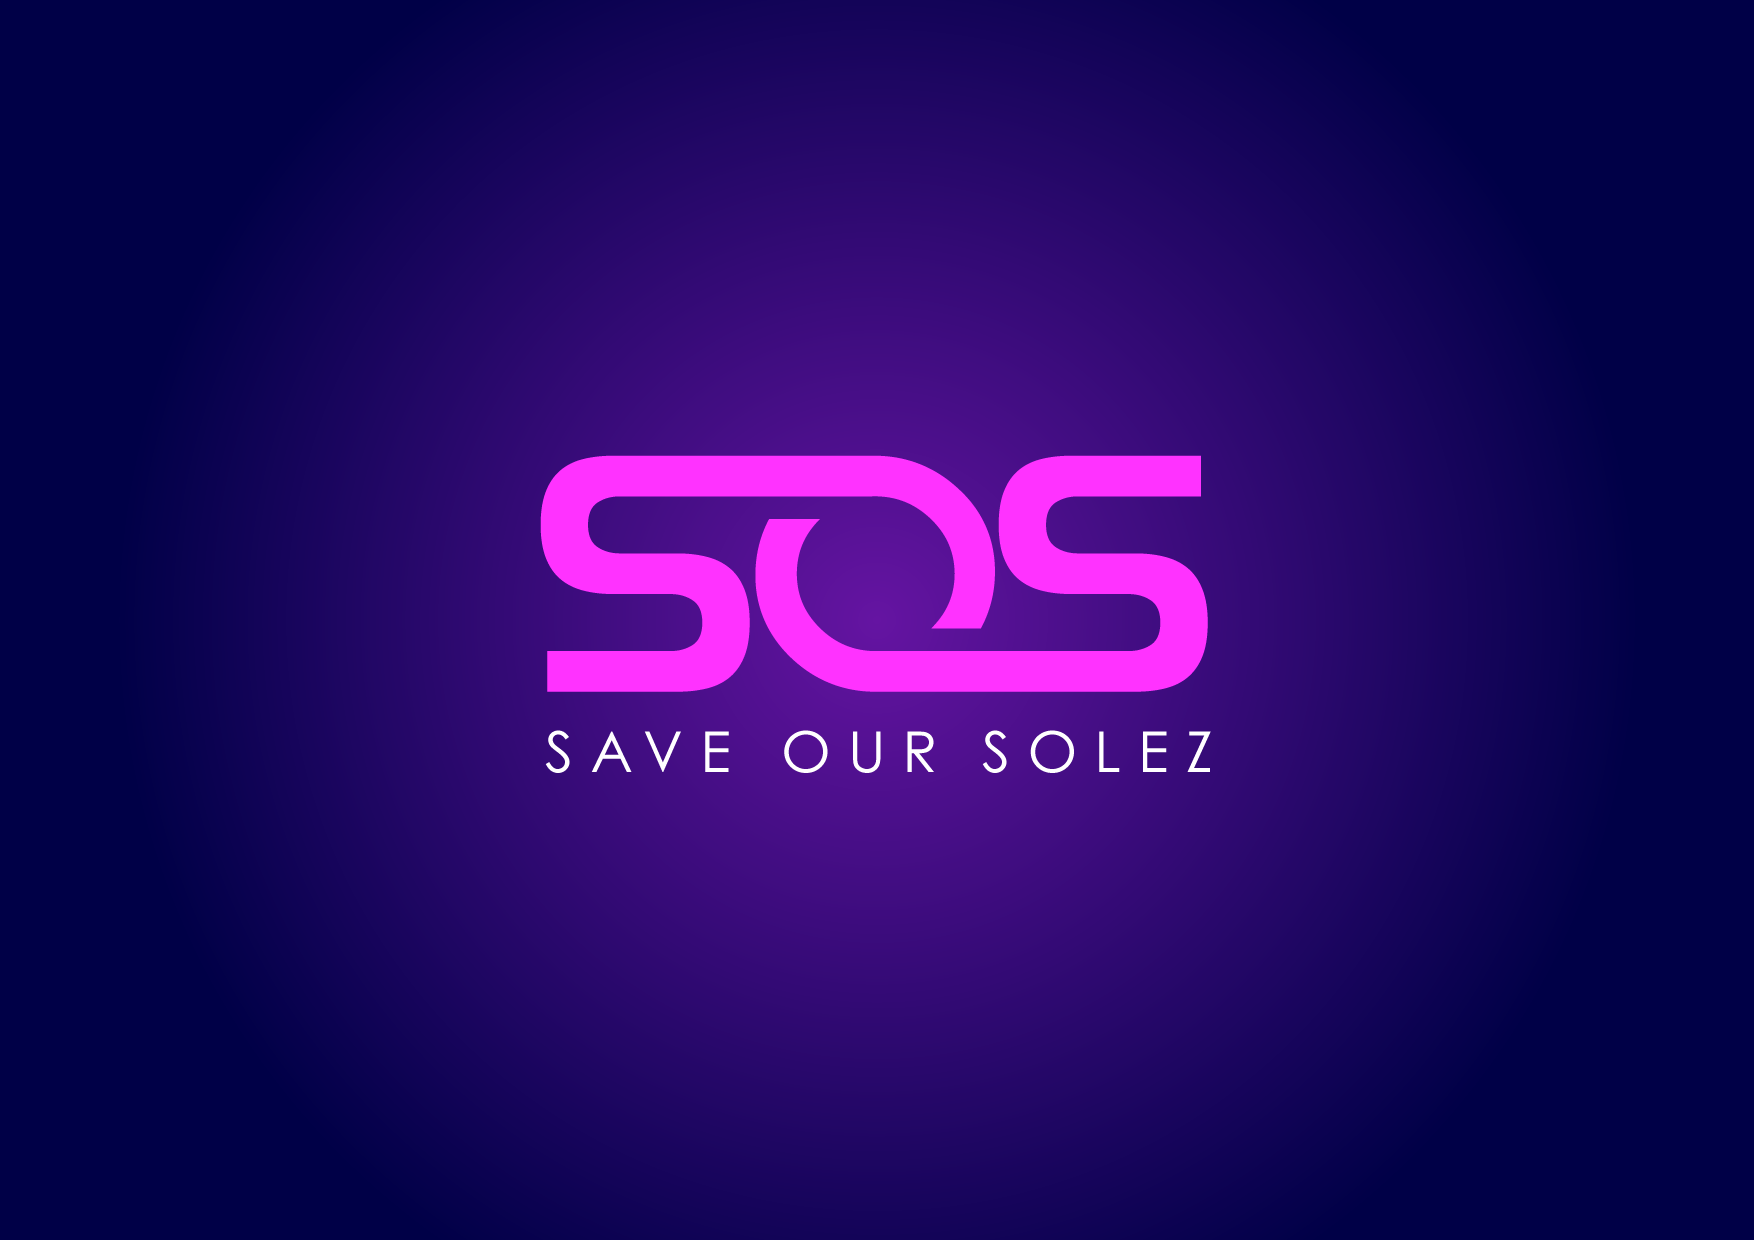 Logo Design by bulb - Entry No. 9 in the Logo Design Contest Captivating Logo Design for Save Our Solez.